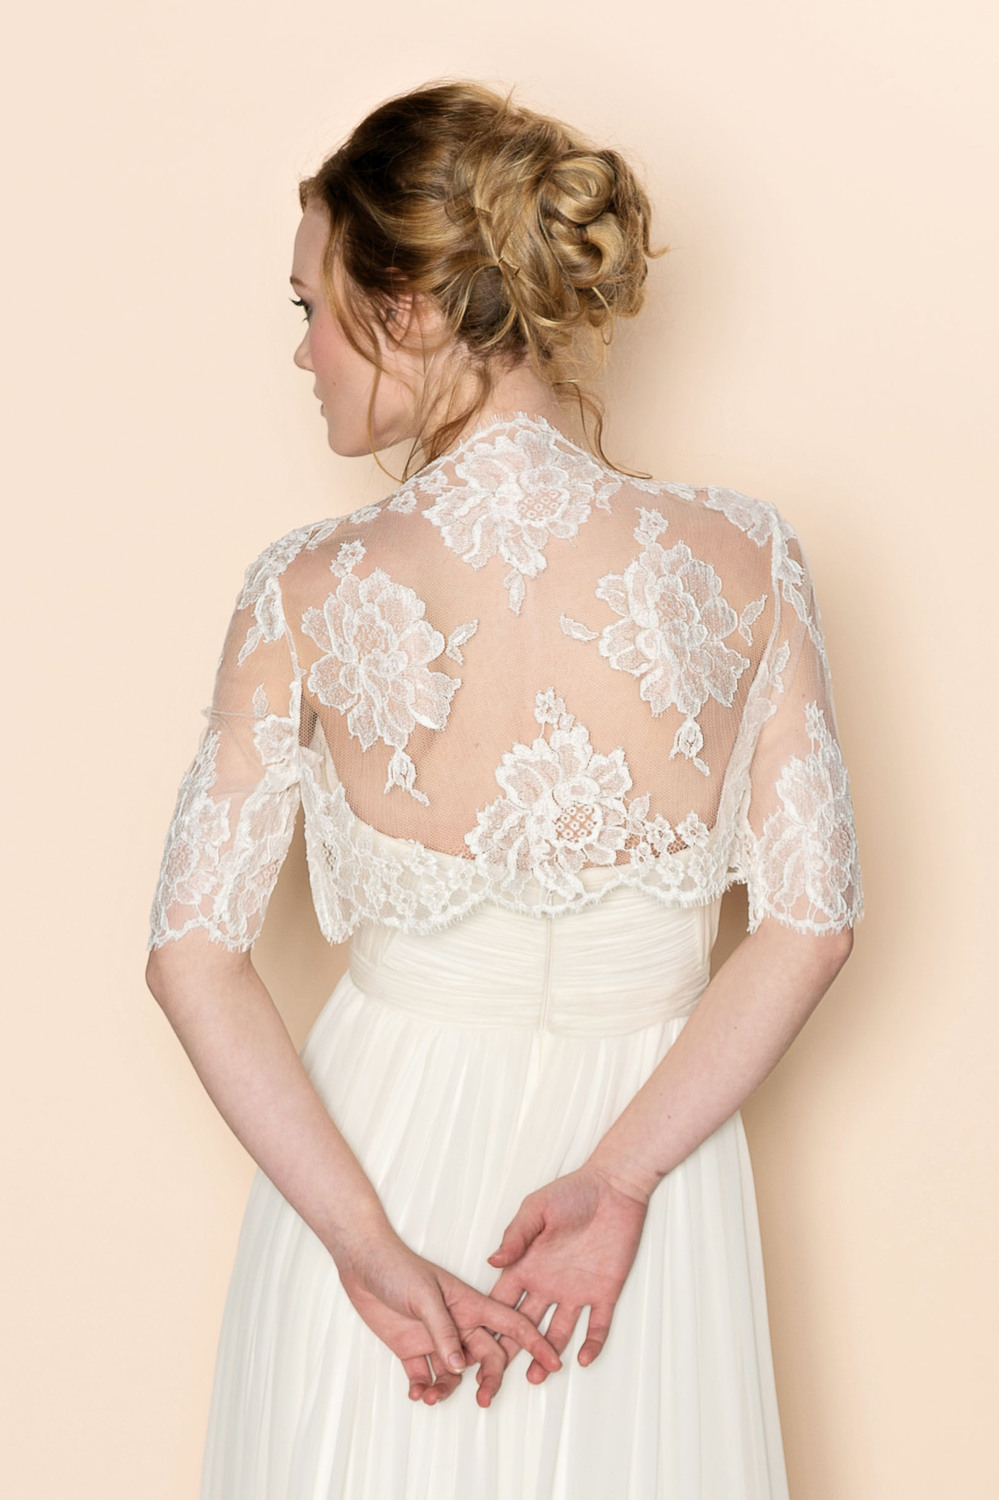 Roseline Bridal French Lace Tulle Bolero Cover Up Shrug In Off-White